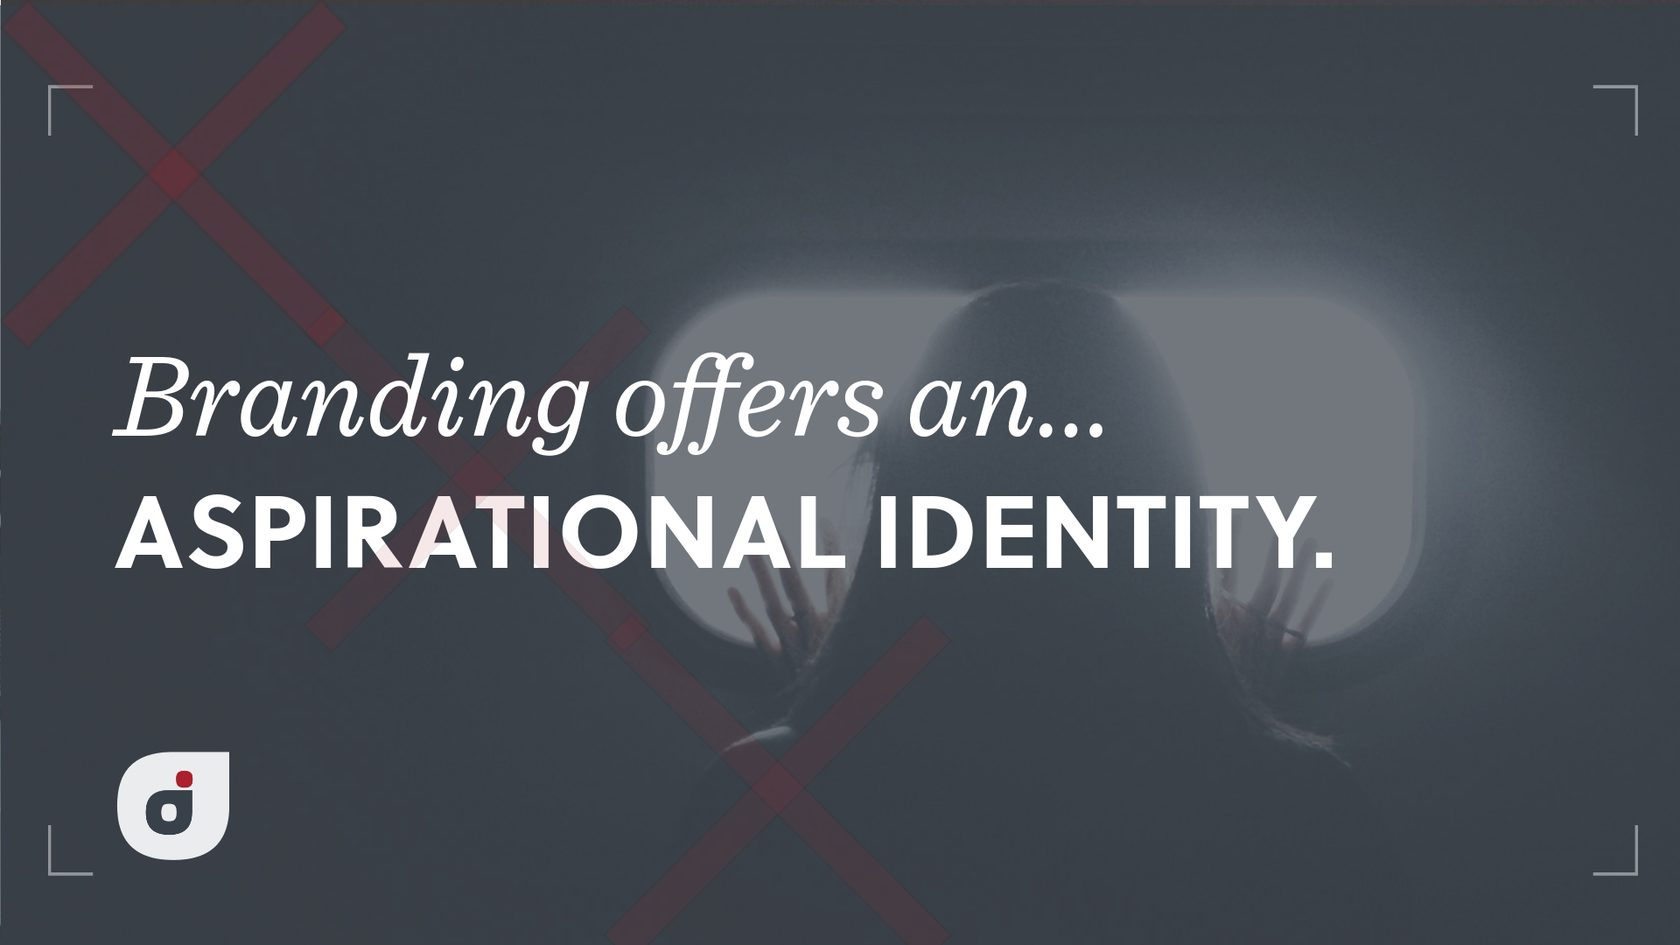 The alluring power of branding is this: branding offers an aspirational identity